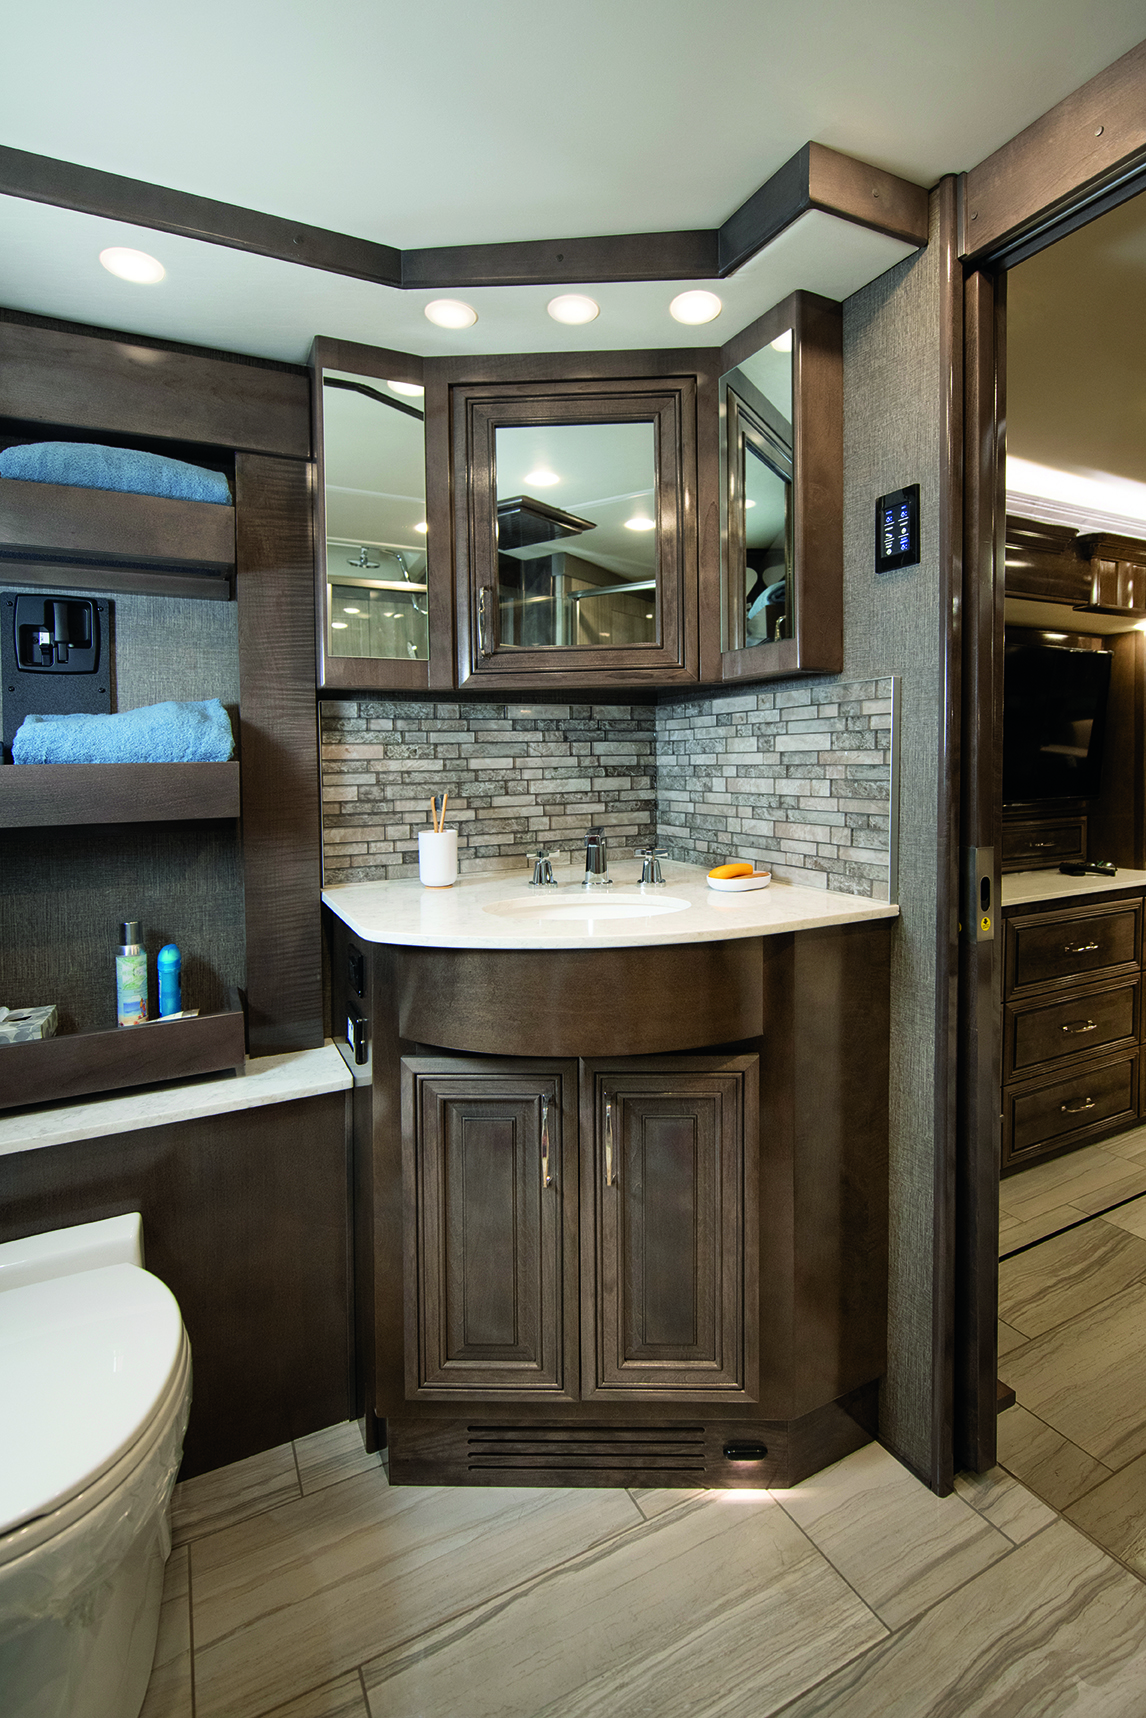 6 mastervanity Dream45 A Rockport SB5601